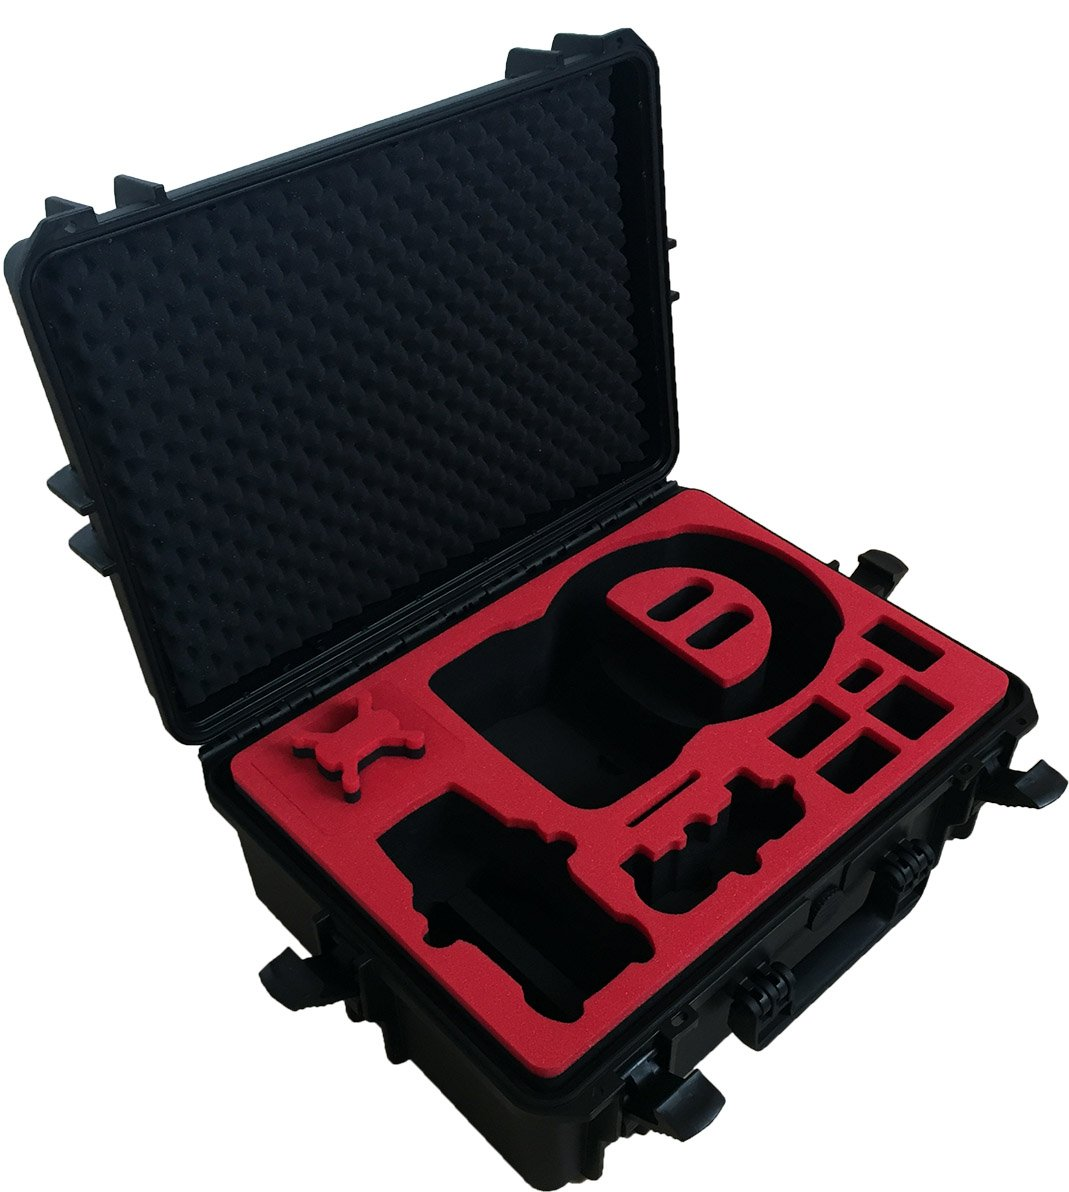 Professional Carrying Case for DJI Goggles (also racing edition) and DJI Mavic Pro and Platinum - 100% Water and dust proofed - by MC-CASES by mc-cases (Image #3)